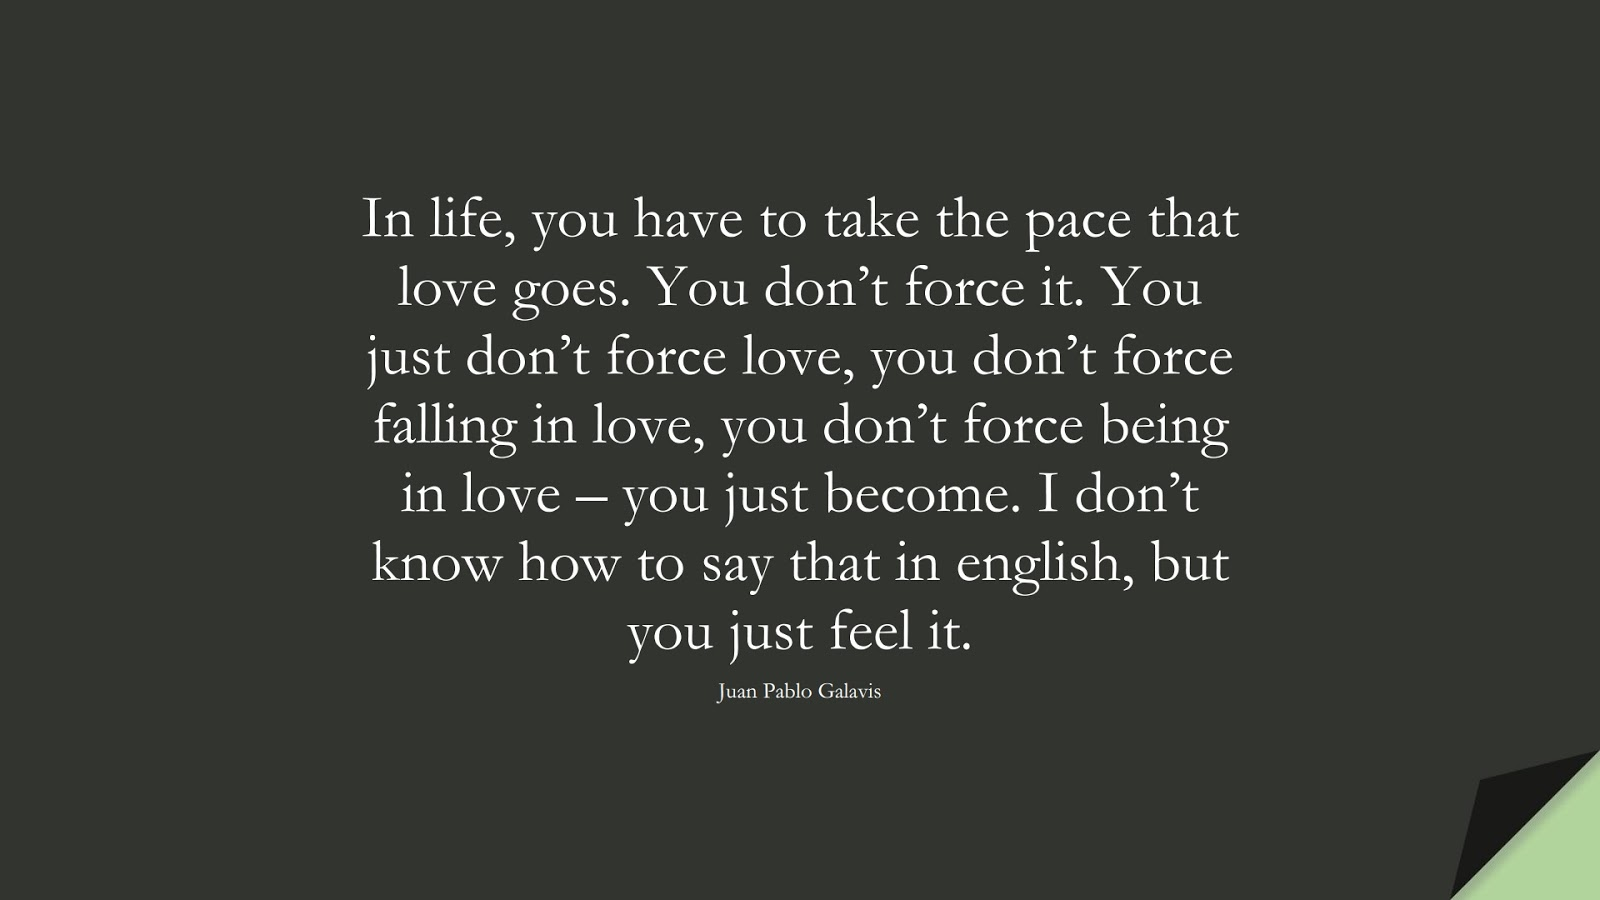 In life, you have to take the pace that love goes. You don't force it. You just don't force love, you don't force falling in love, you don't force being in love – you just become. I don't know how to say that in english, but you just feel it. (Juan Pablo Galavis);  #LoveQuotes